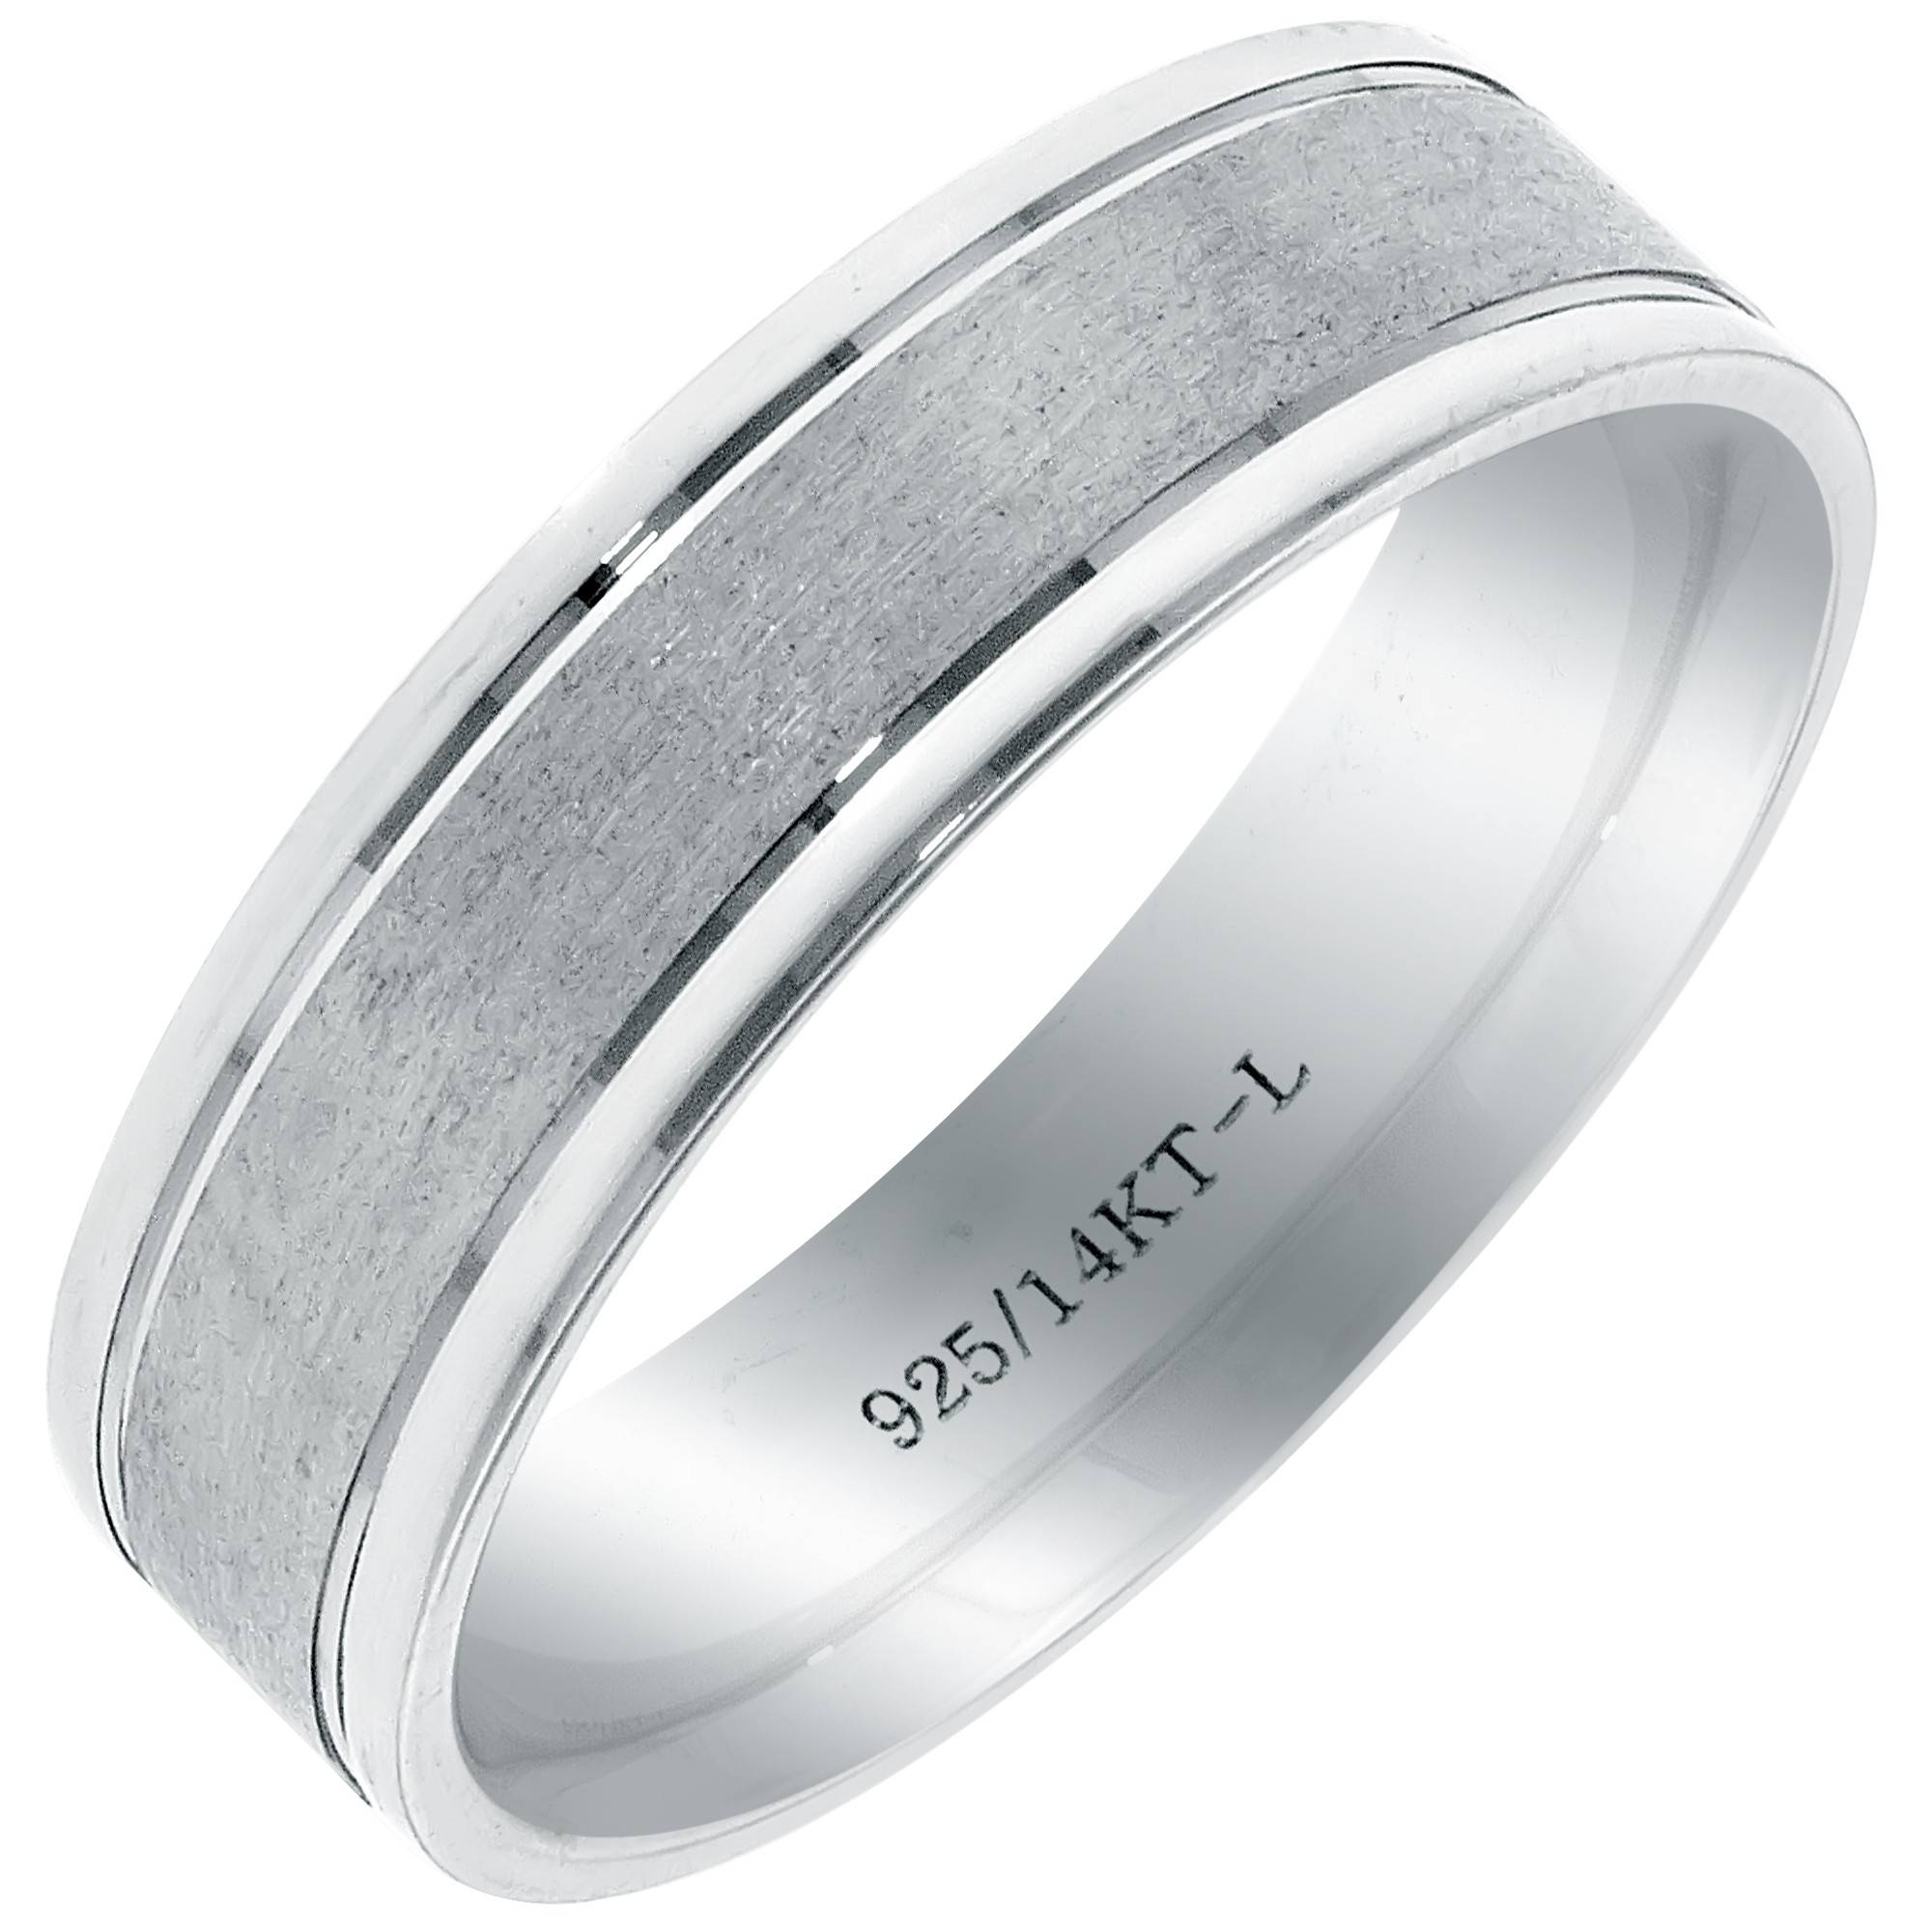 Bond2 Mens Wedding Band In 14Kt White Gold And Sterling Silver (6Mm) Inside Mens Sterling Wedding Bands (View 2 of 15)